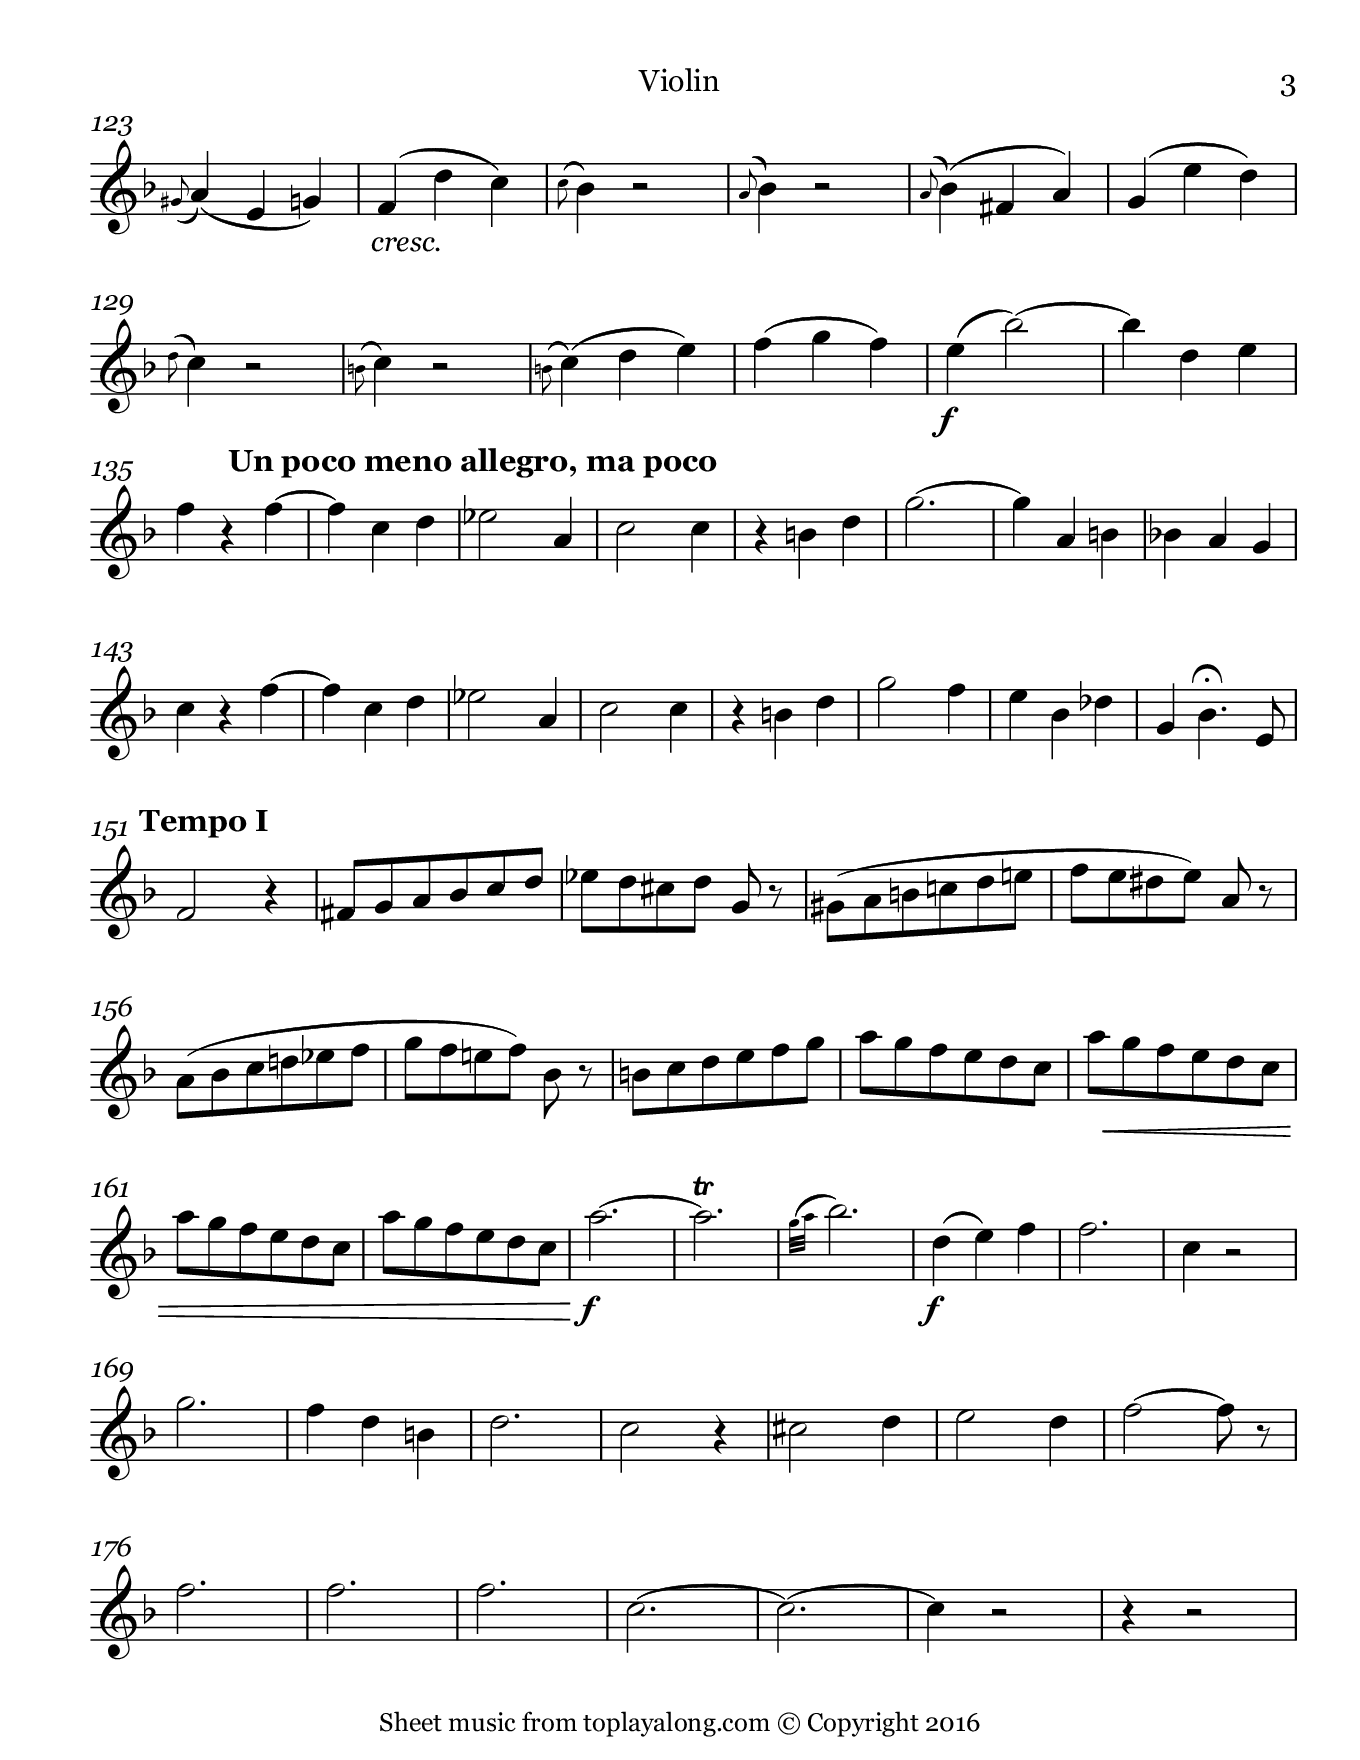 Je veux vivre from Romeo and Juliet by Gounod. Sheet music for Violin, page 3.